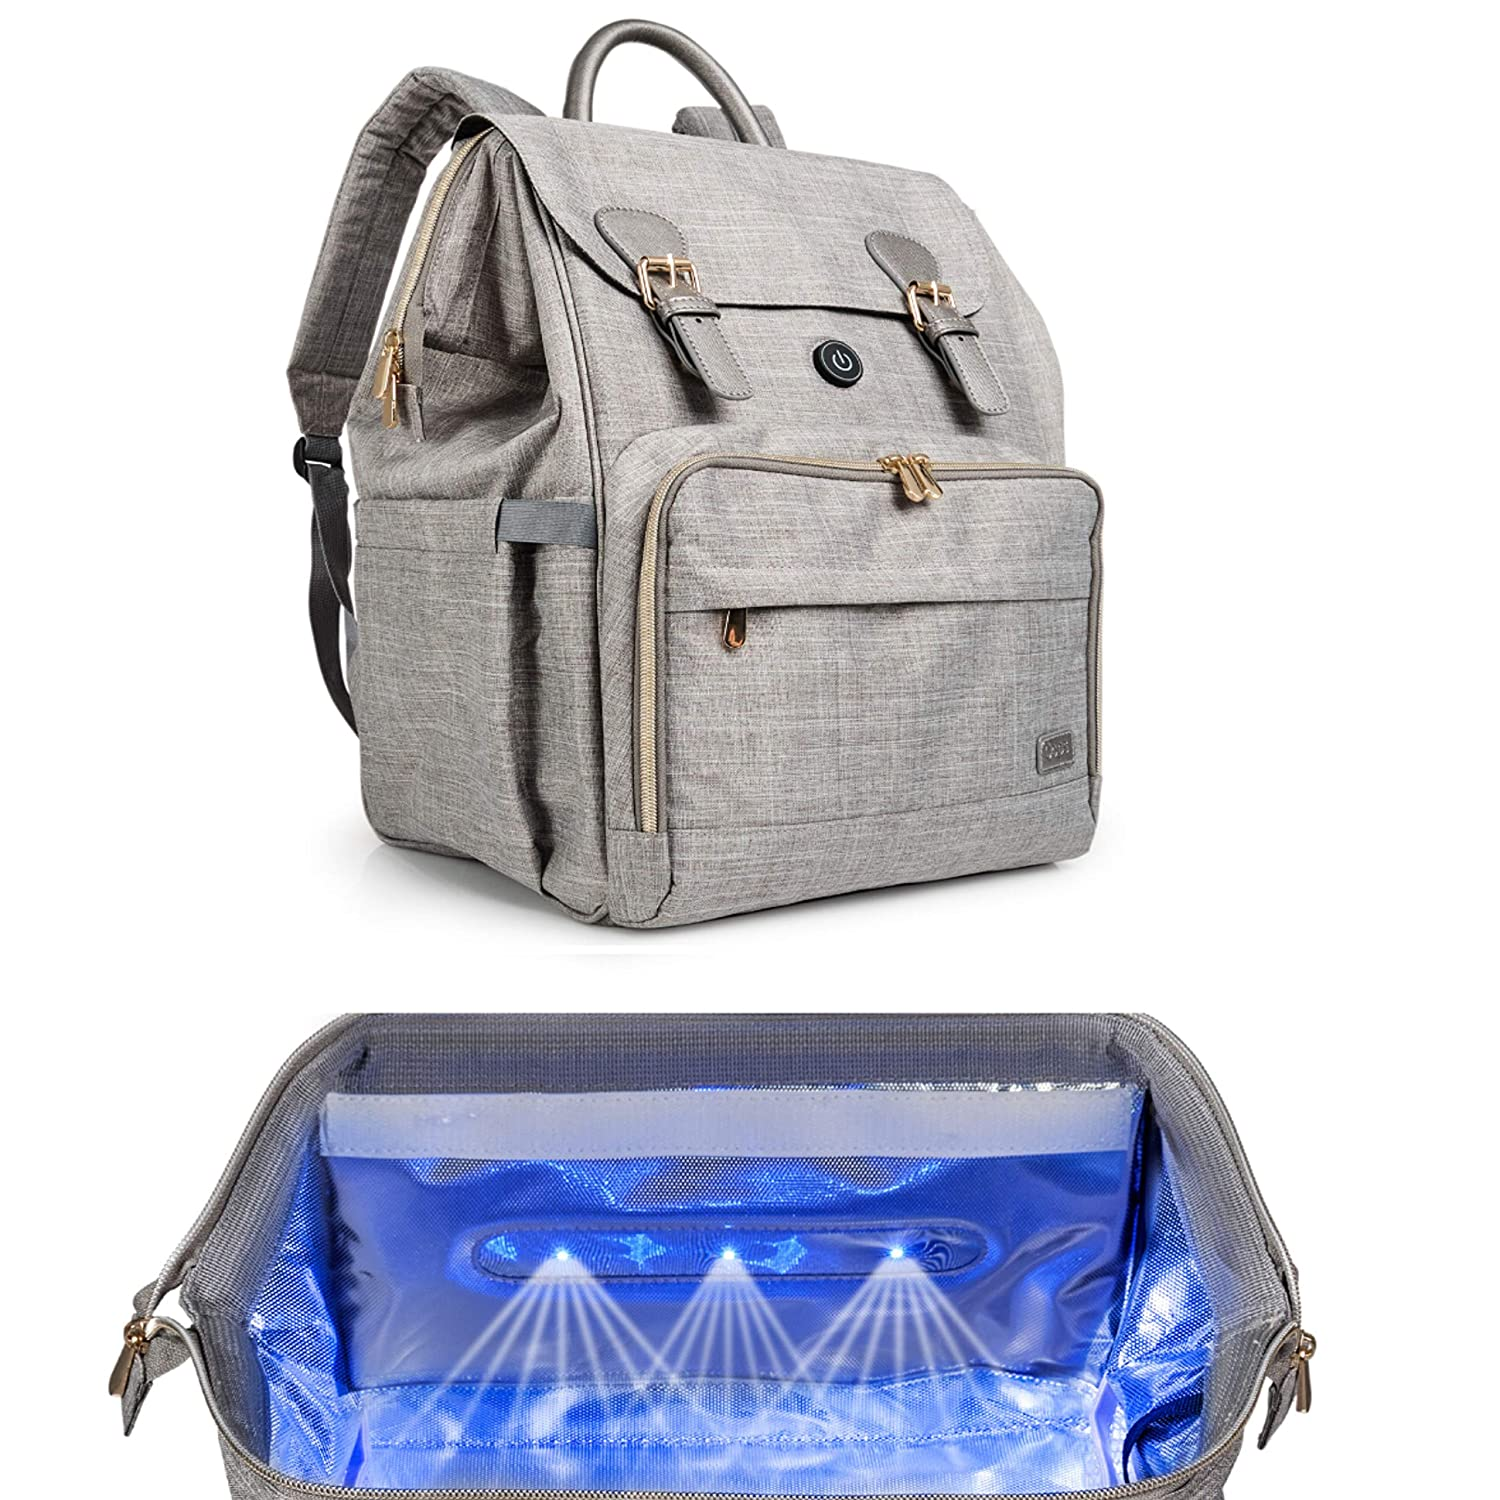 Oopsababy Diaper Bag Backpack with Cleaning Lights; Connect to Juice Pack or Wall Adapter; Designer Gray with Rose Gold Hardware Diaper Bag Organizer for Baby Boy or Girl